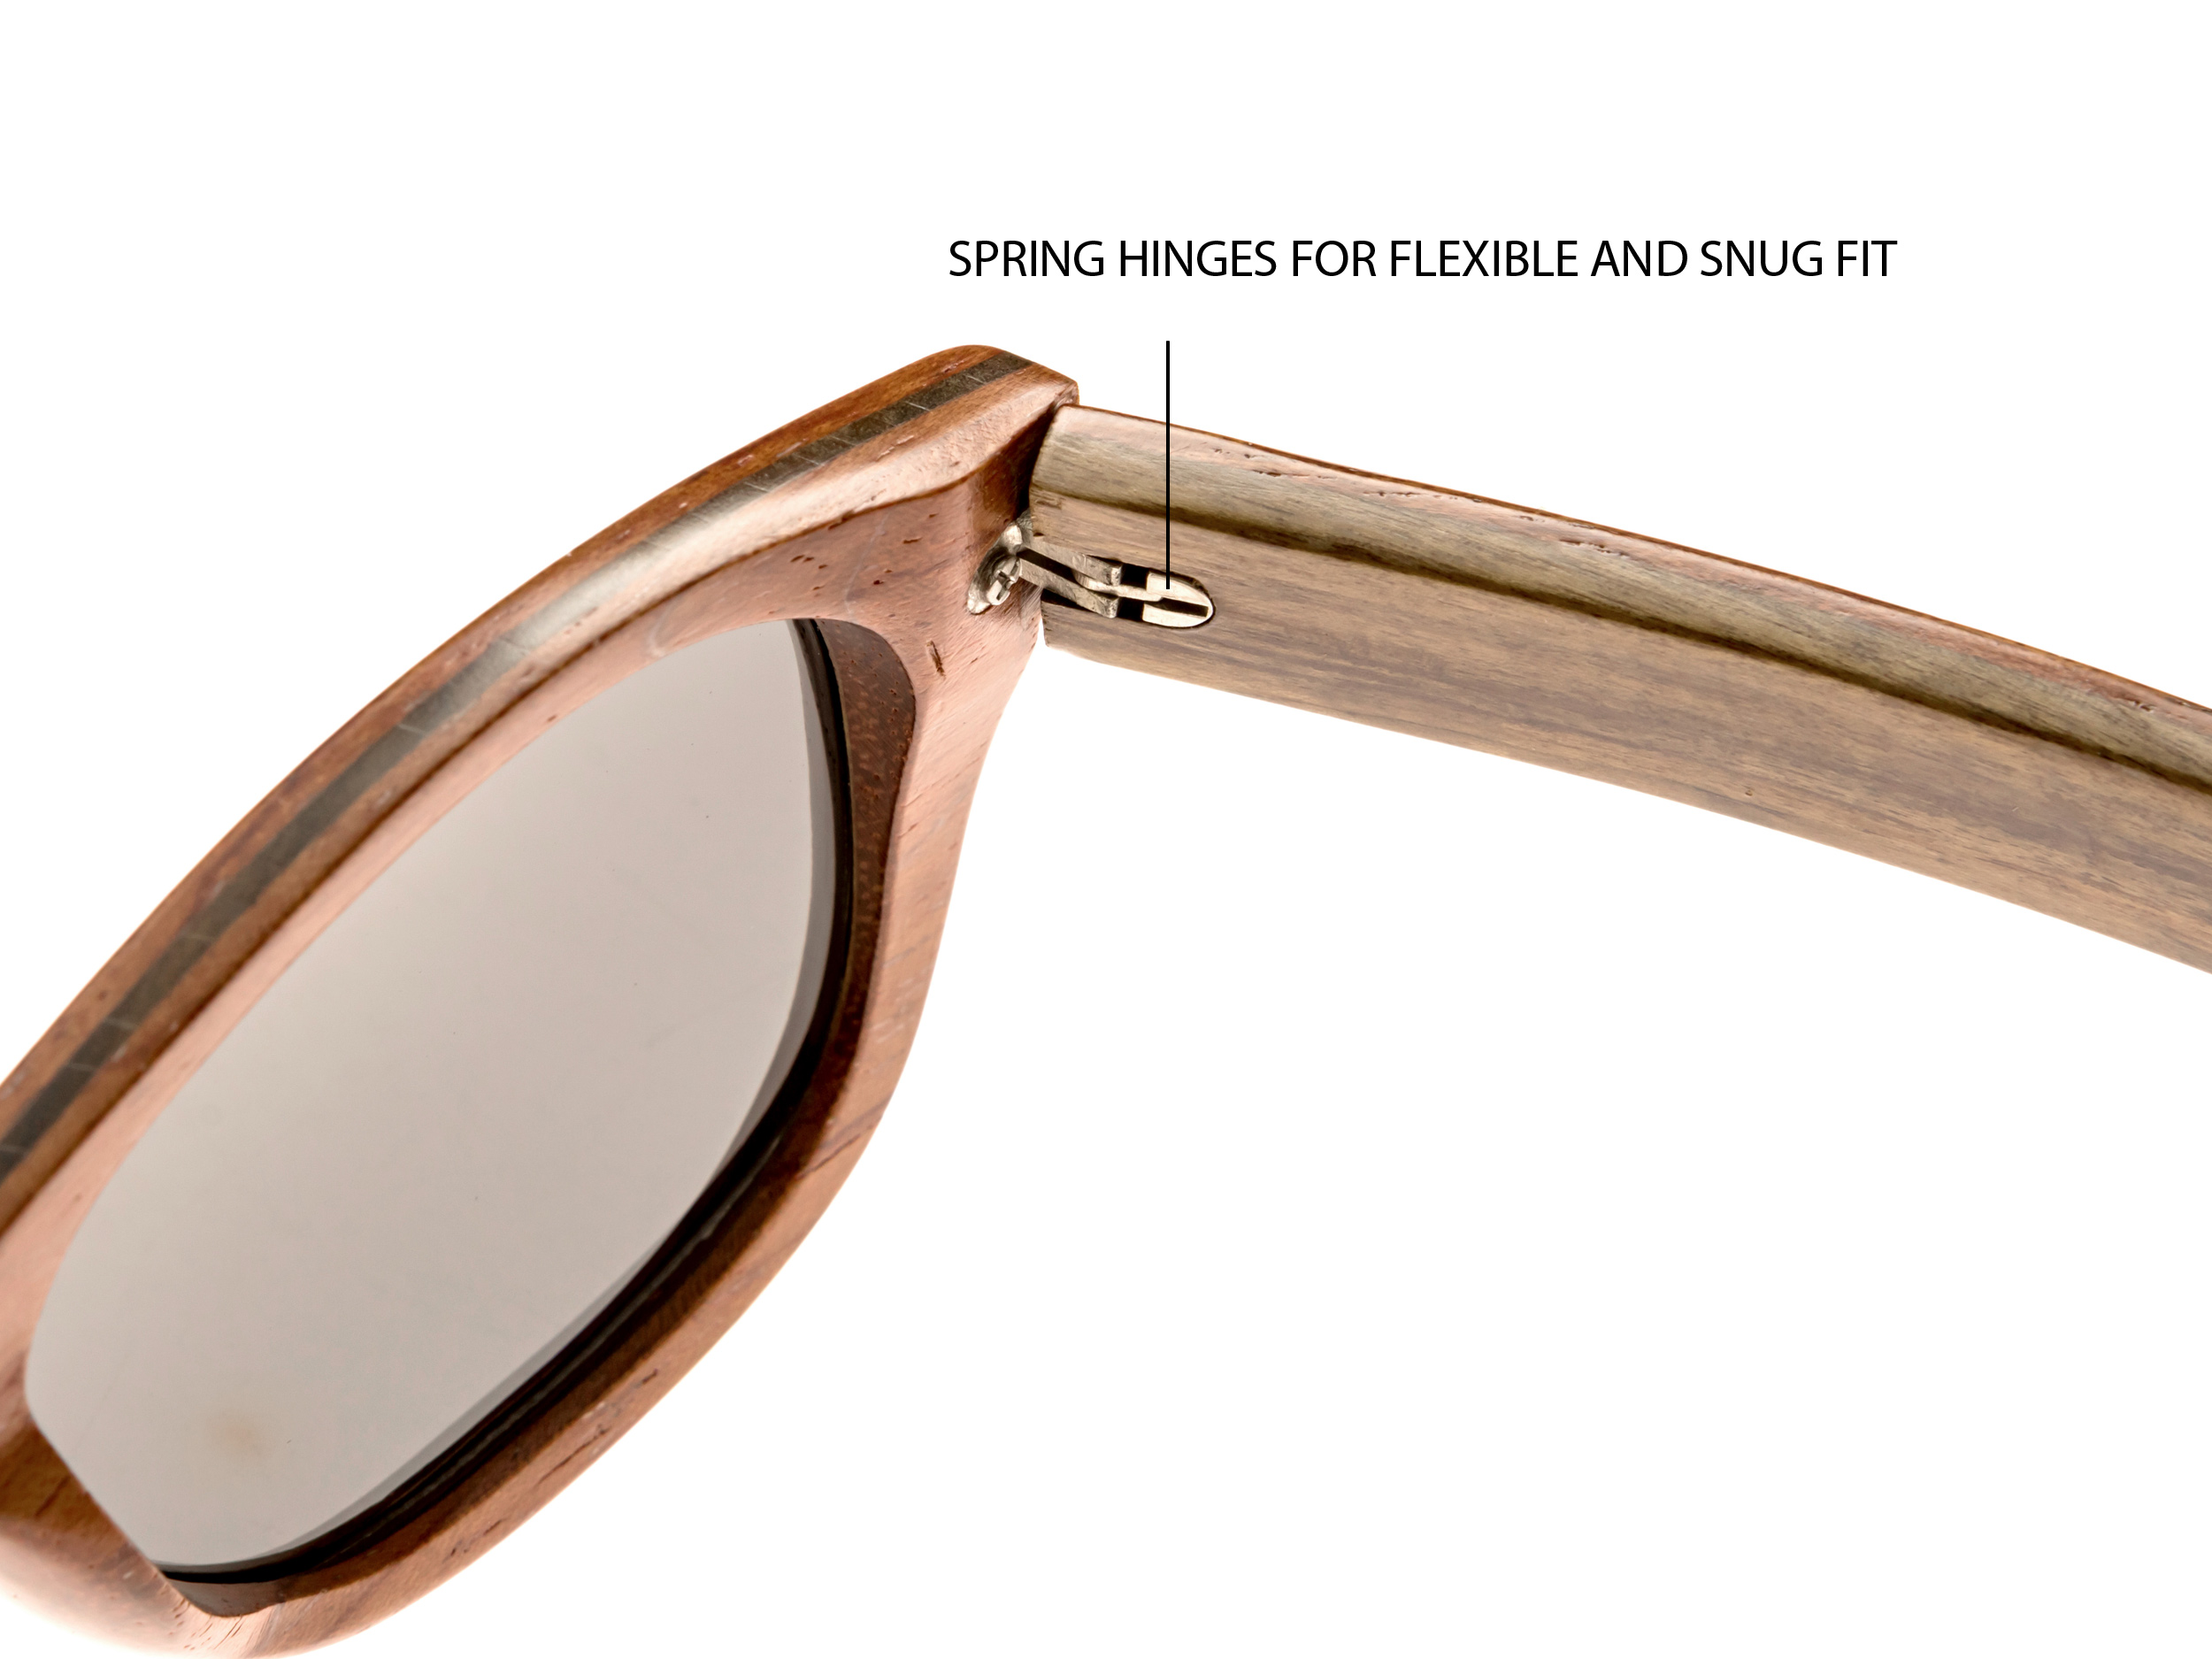 Bubinga and ebony wood sunglasses New York - hinge